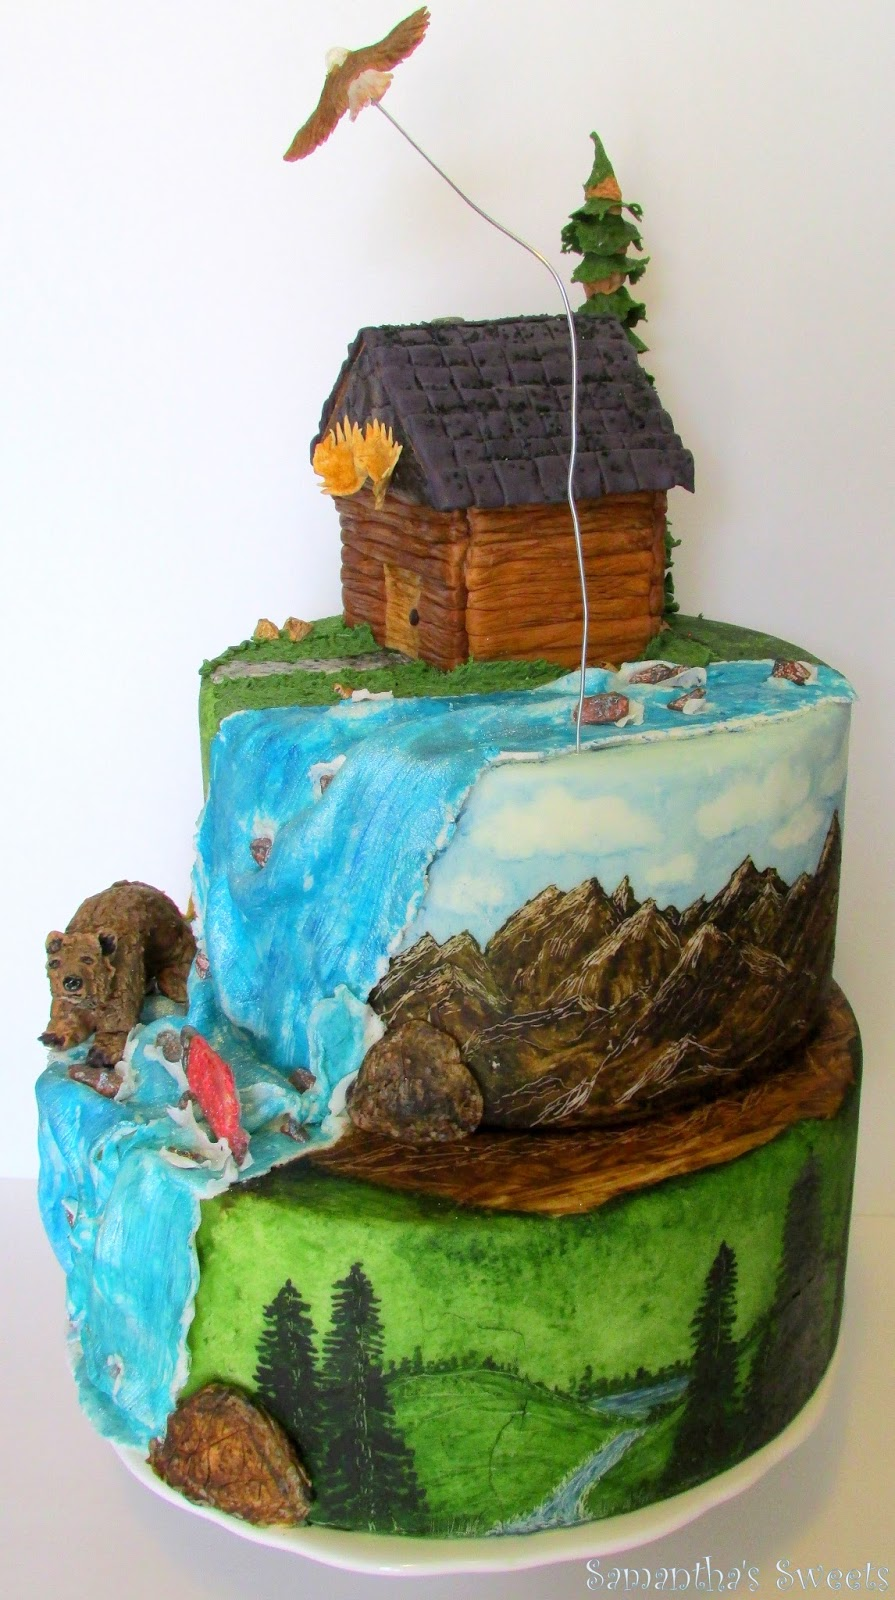 Samanthas Sweets And Sams Sweet Art Outdoor Adventures Birthday Cake